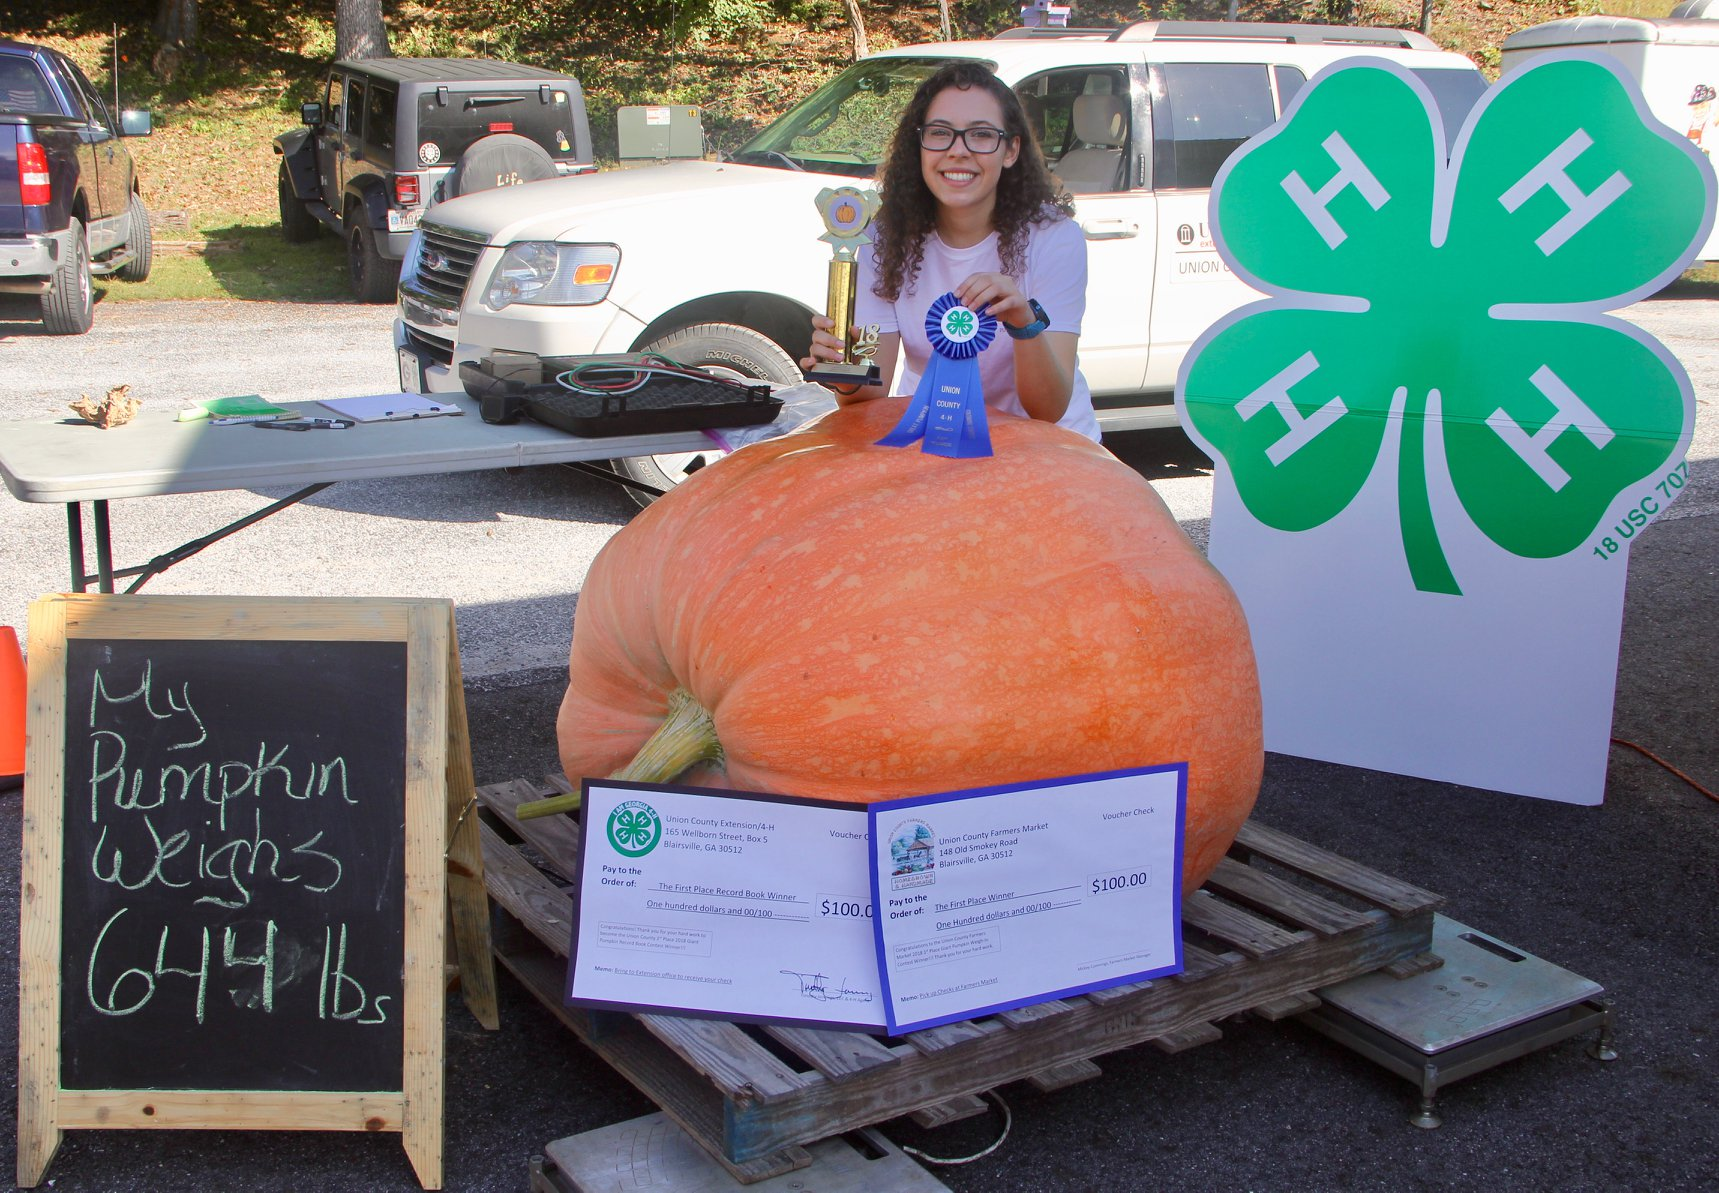 Jessie Holbrook of Union County, who submitted a pumpkin weighing 644 pounds, took first place in the Georgia 4-H pumpkin-growing contest this year.